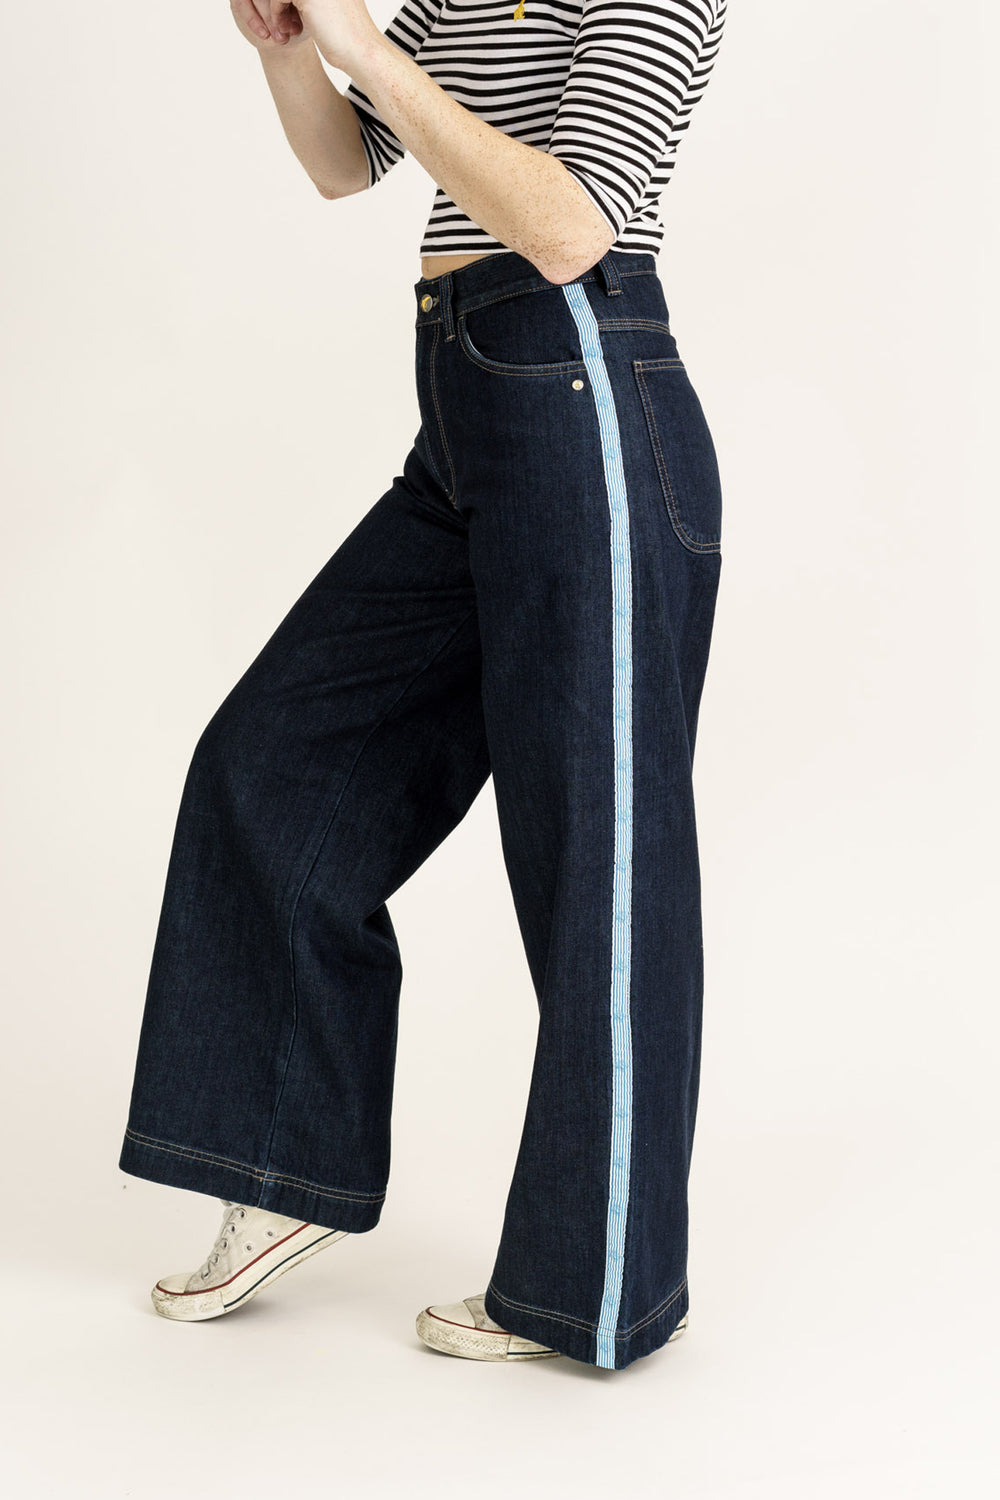 Women's Wash Only Skate Jean Wide Fit Organic Denim with Tape - Monkee Genes Organic Jeans